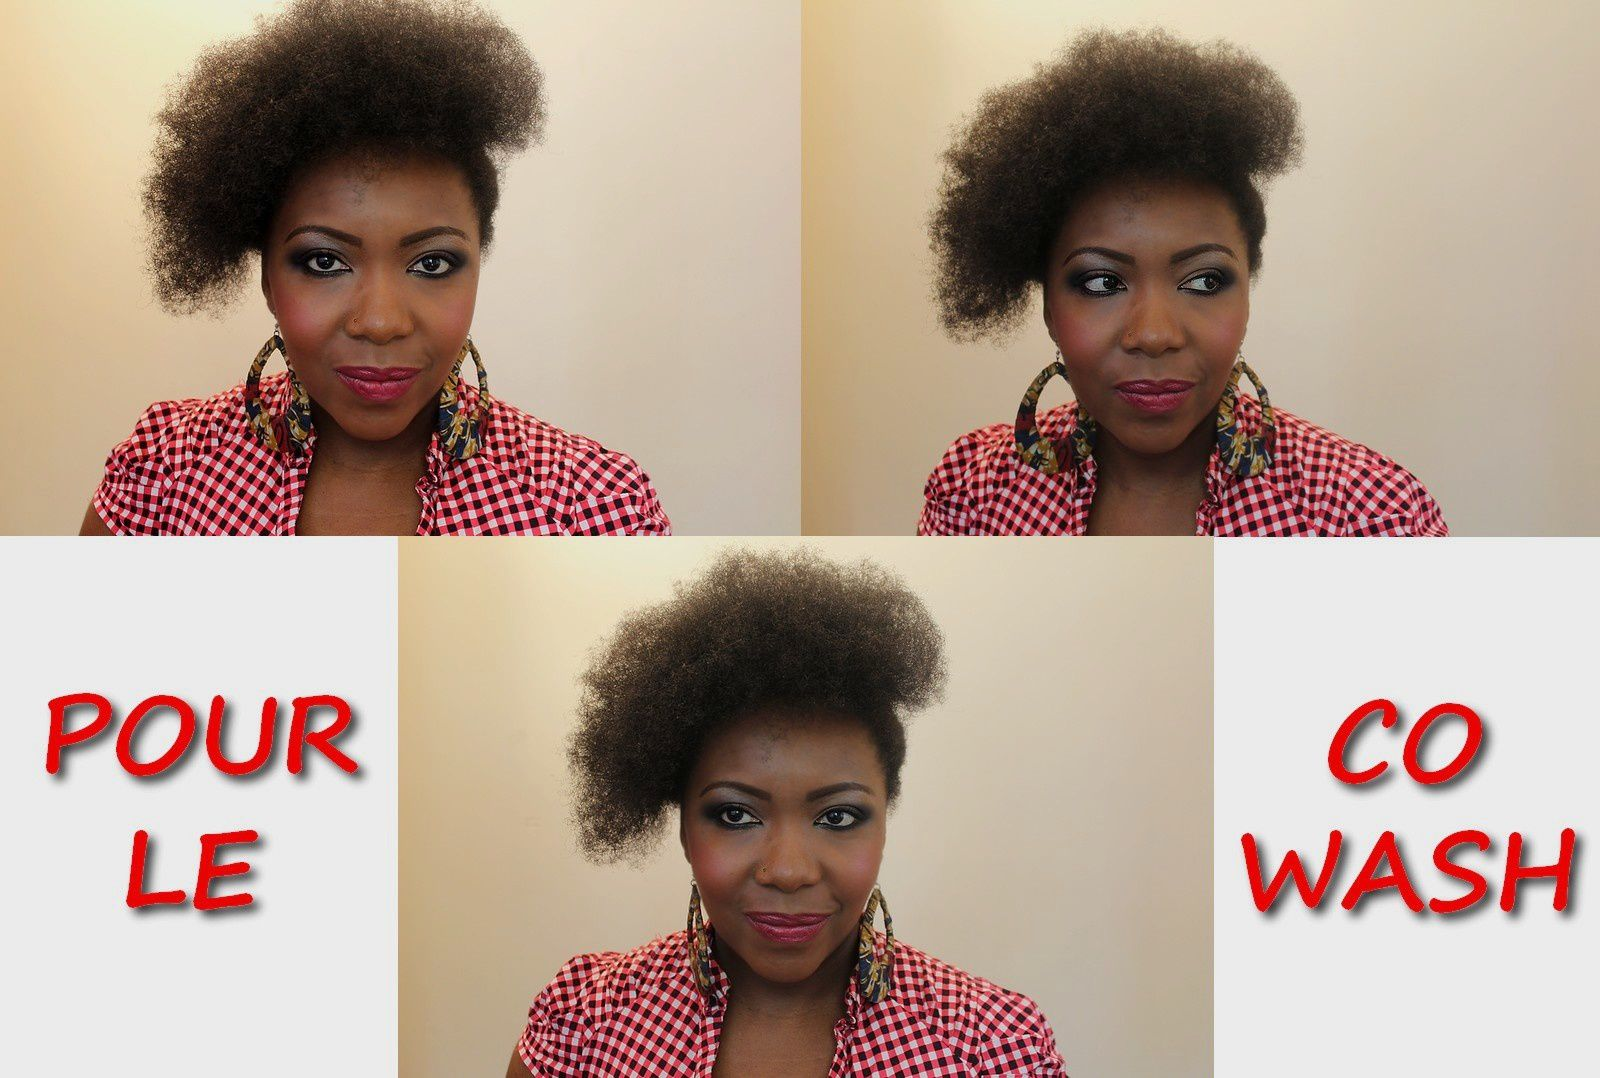 [Nappy hair] pourquoi je recommande le co-wash